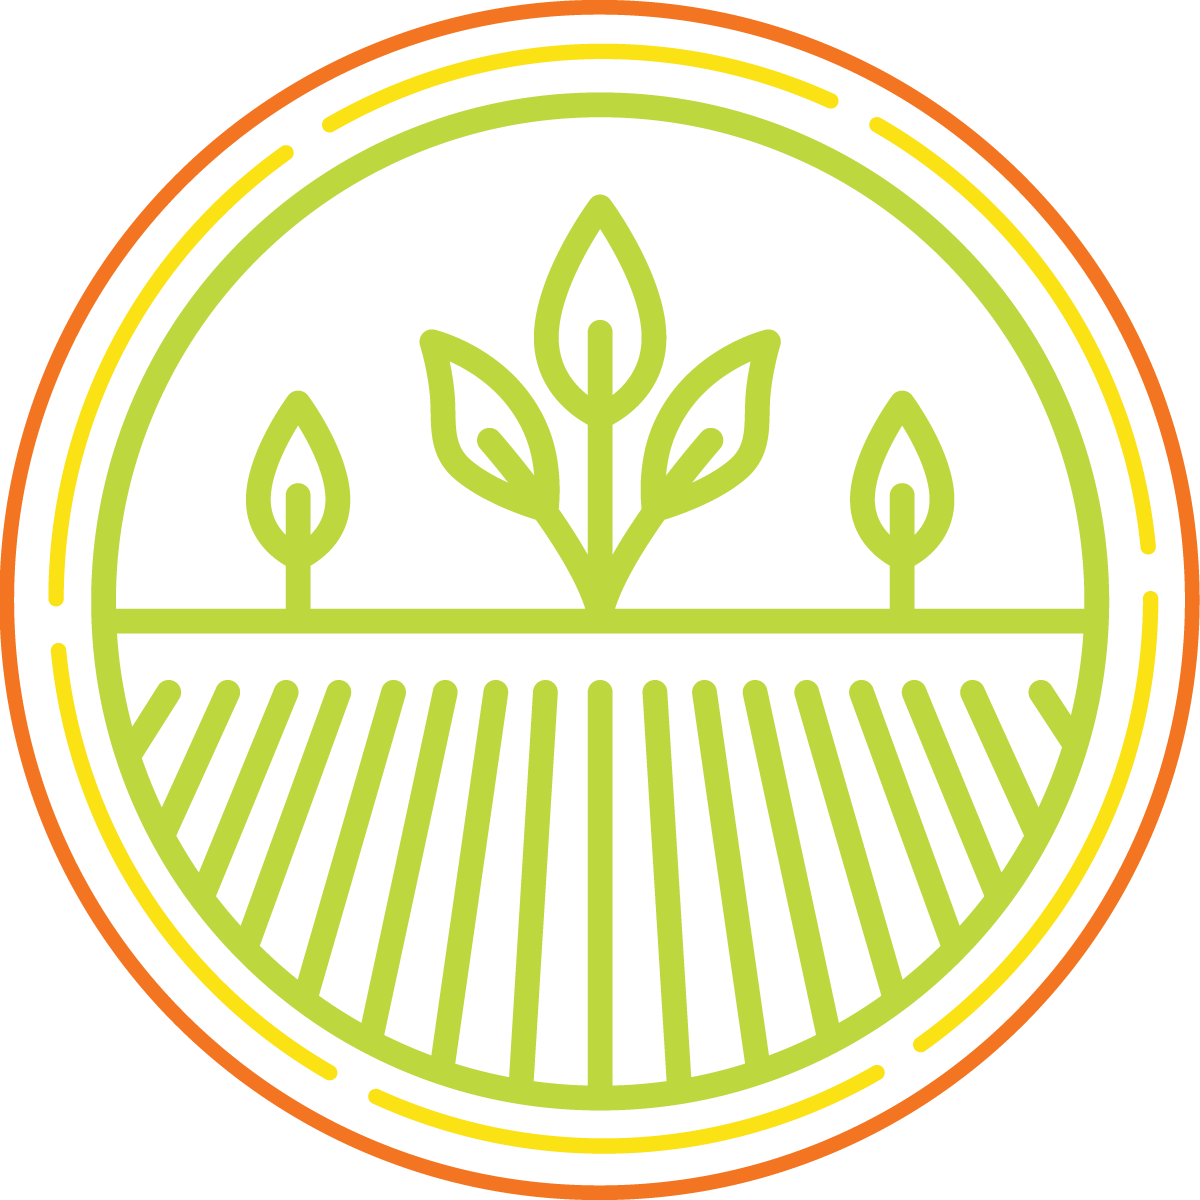 Agriculture category logo.